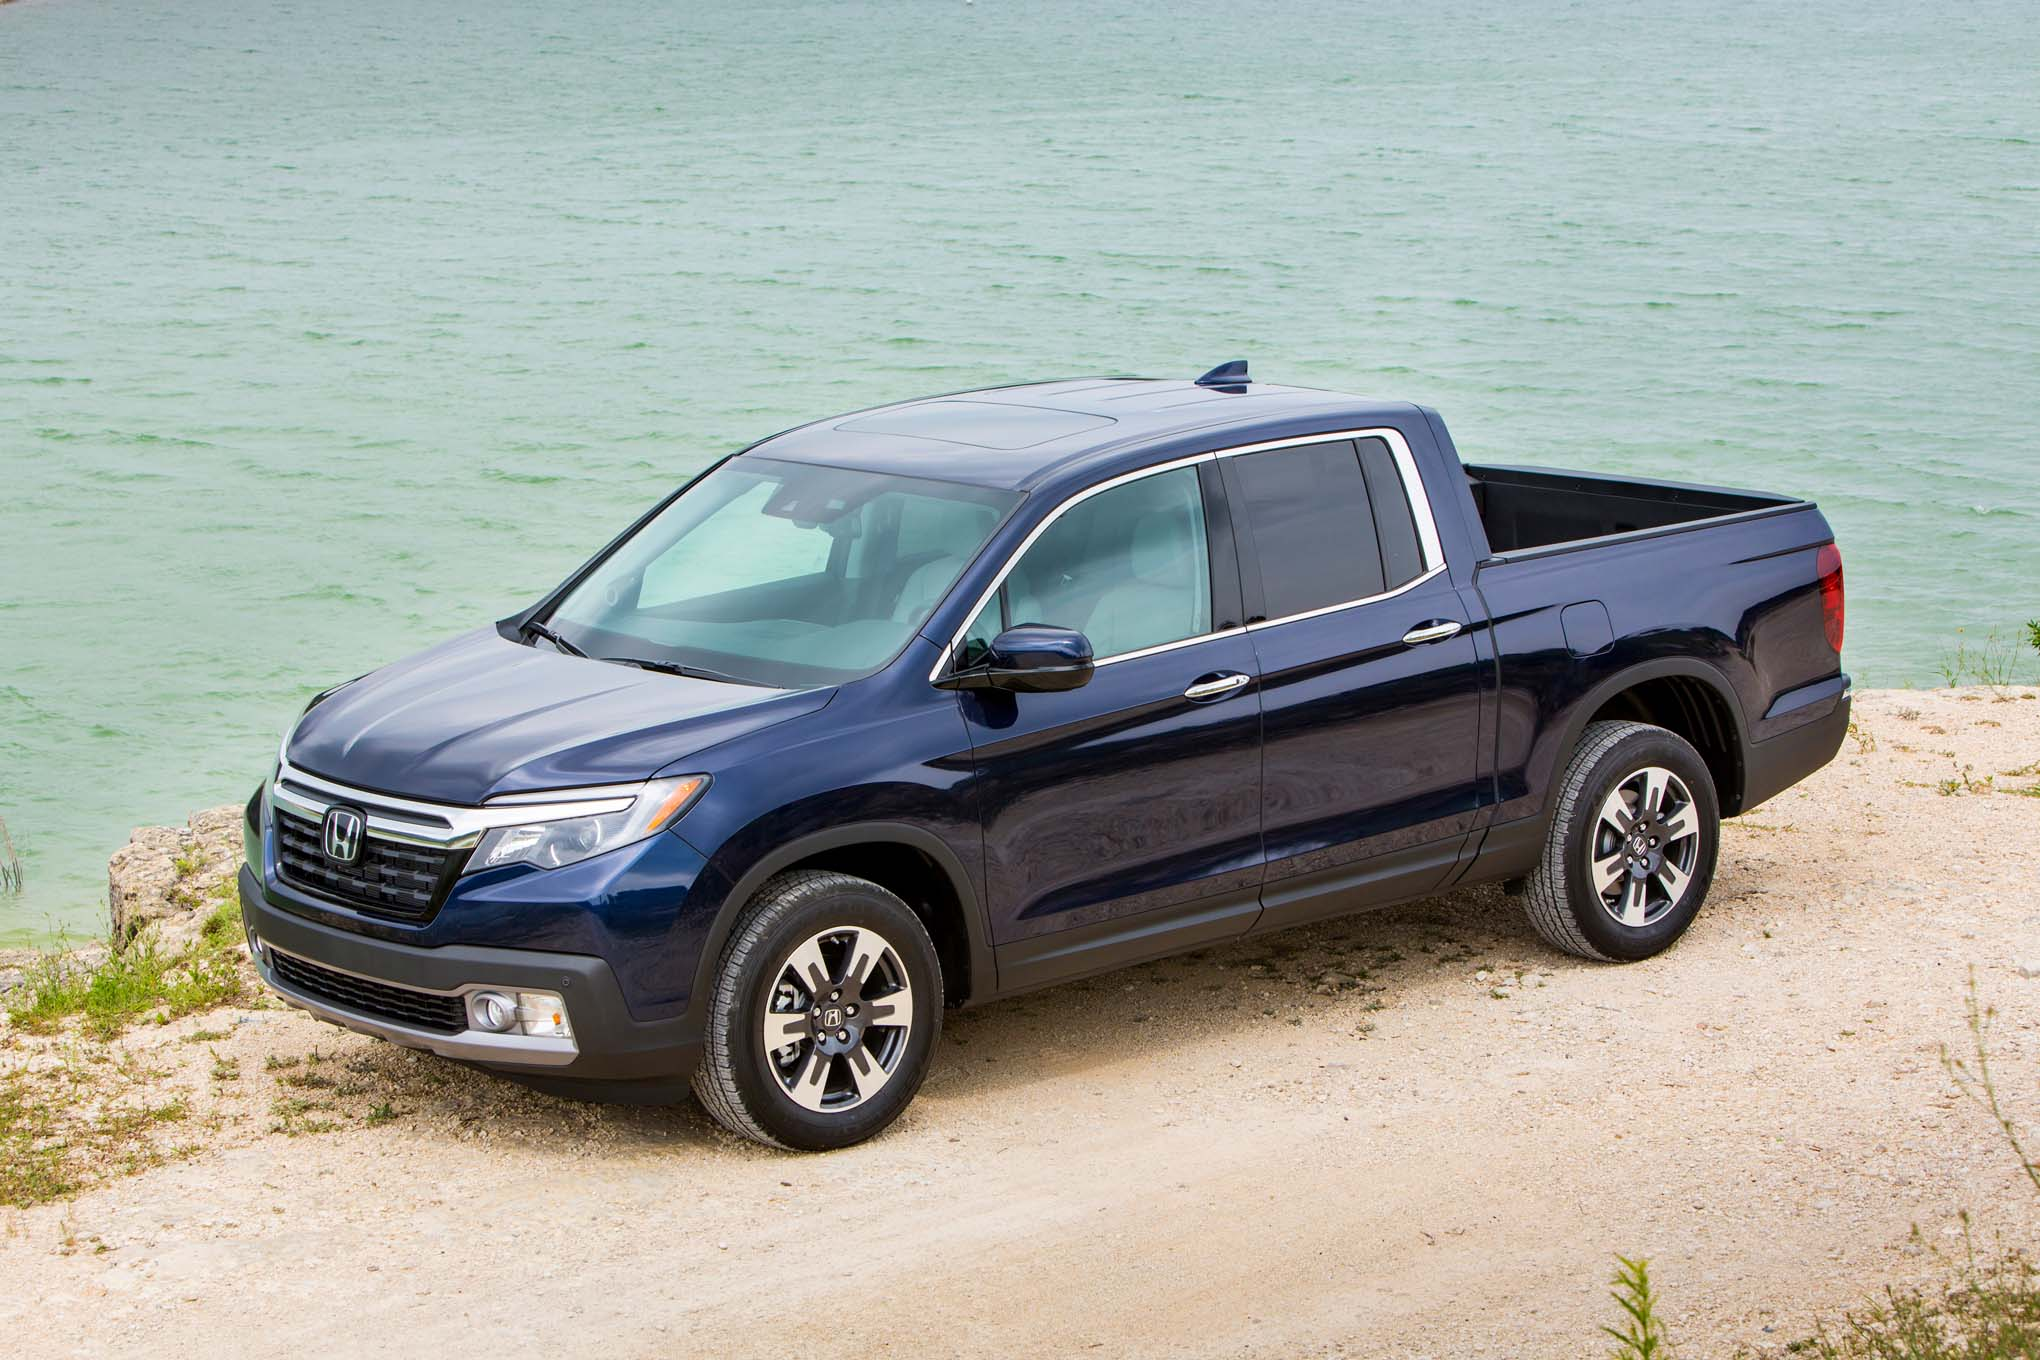 hight resolution of video honda drops toolbox into bed of ridgeline to prove a subtle point also 2017 honda ridgeline blue on single motor circuit diagram